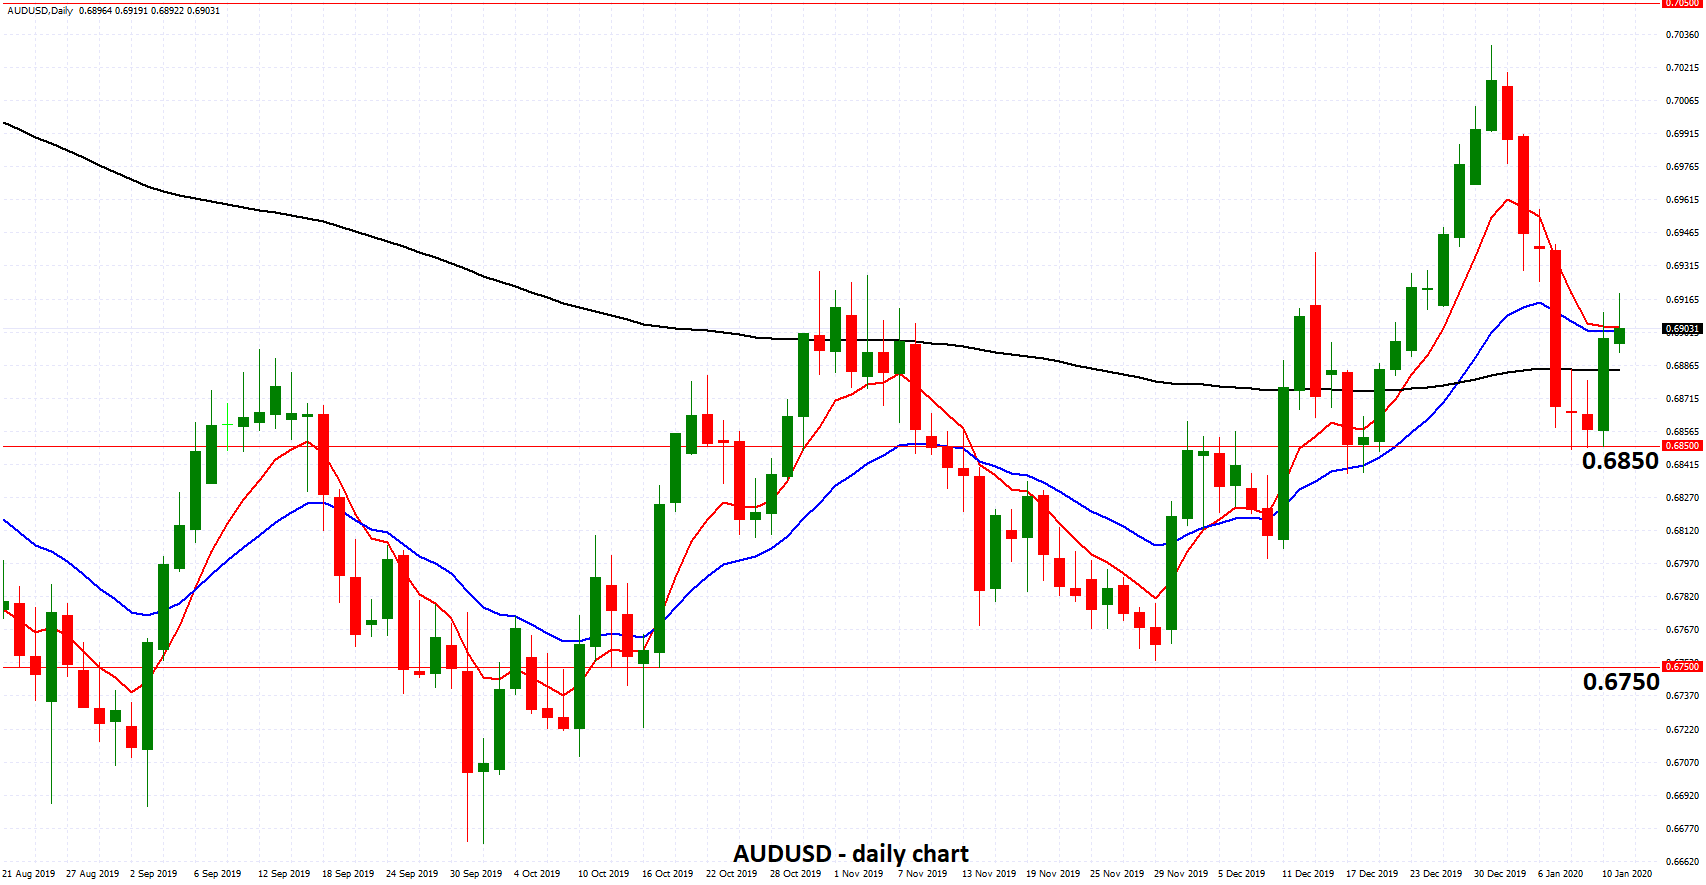 AUDUSD - Enjoys Solid Support from 0.6850 as Economy Struggles